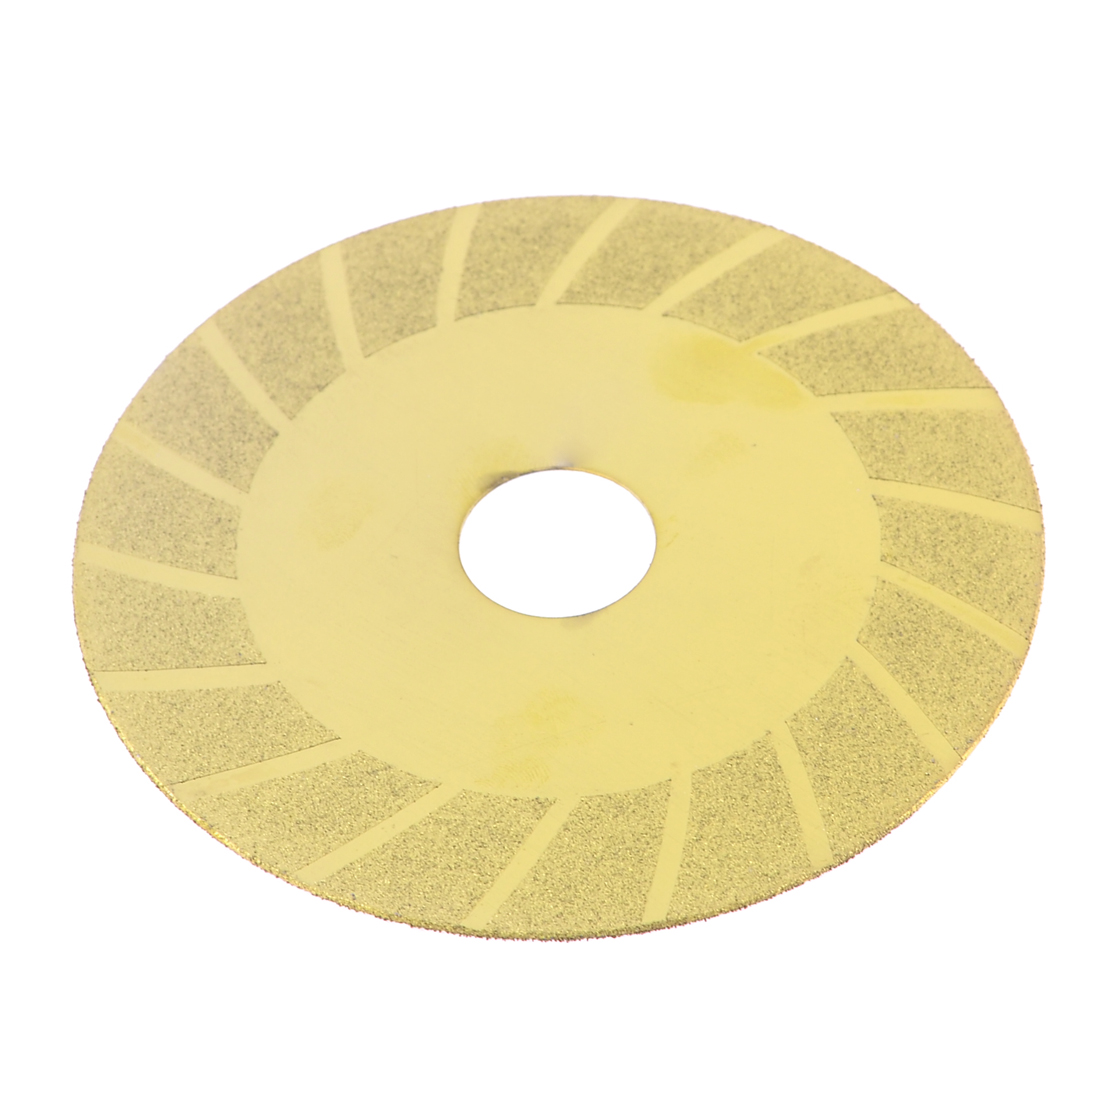 Tile Stone Diamond Cutting Disc Saw Slice 98mm x 20mm x 0.8mm Gold Tone